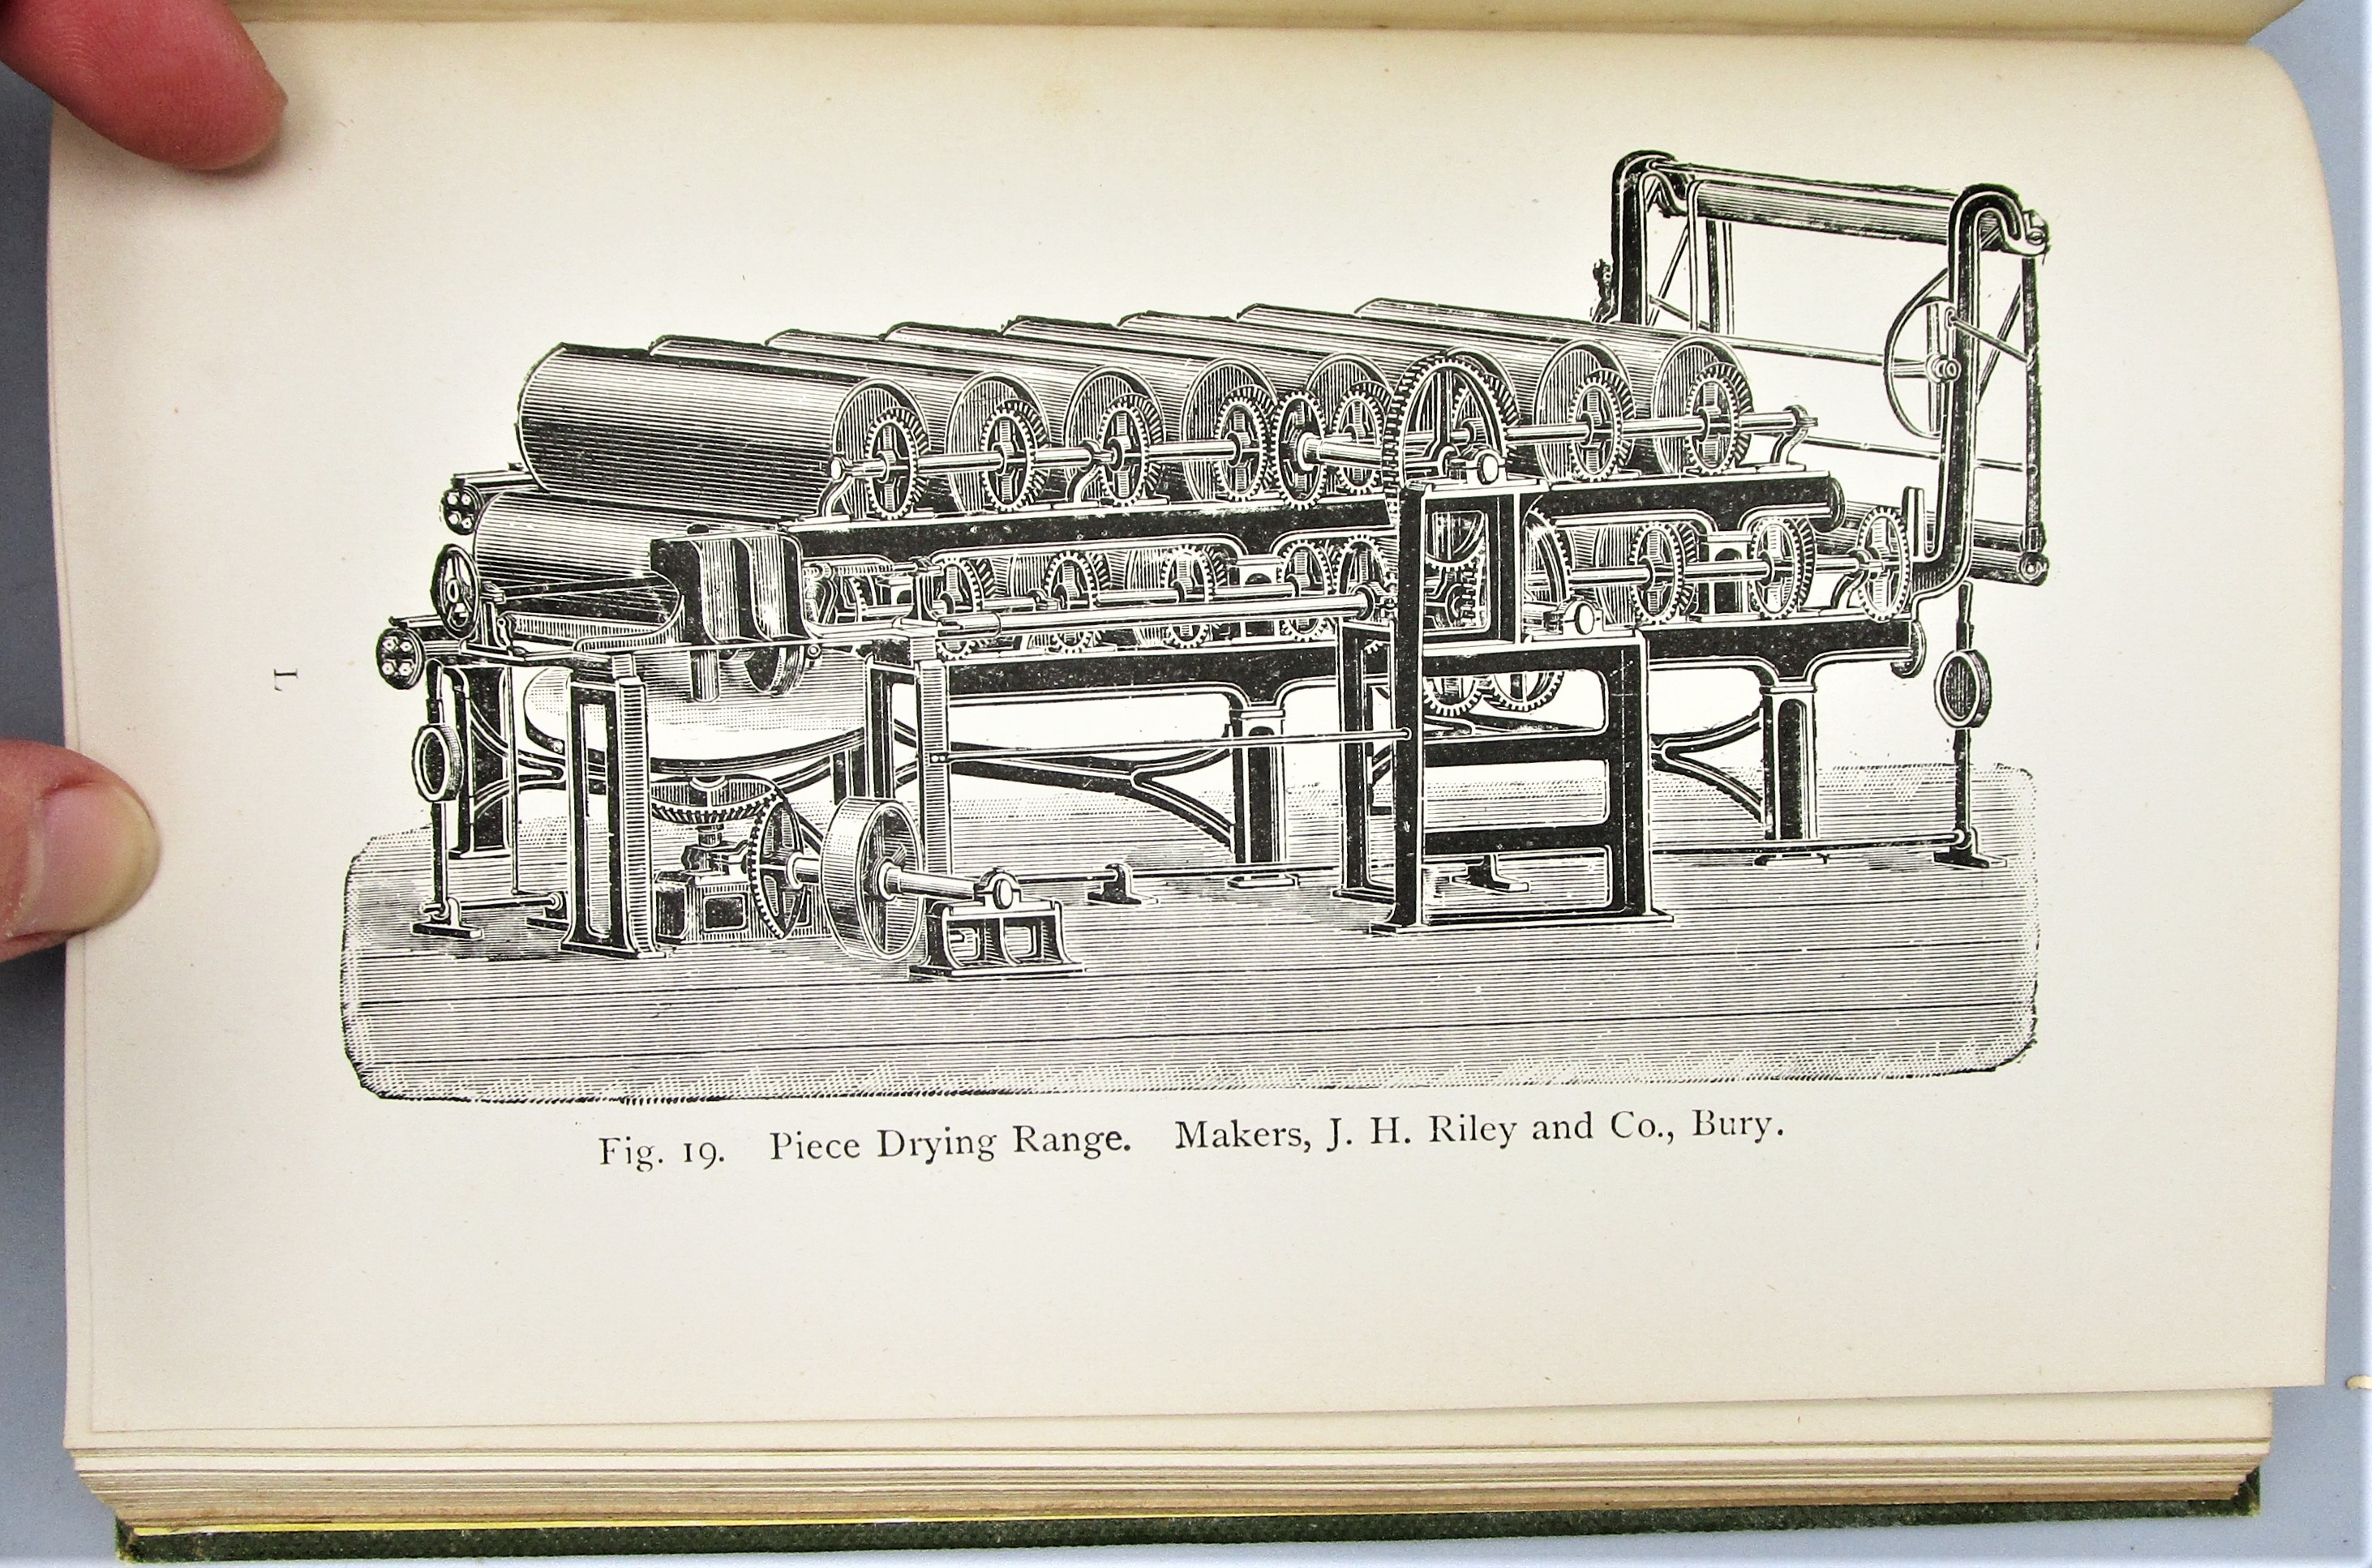 SILK DYEING, PRINTING, AND FINISHING, by George H. Hurst - 1892